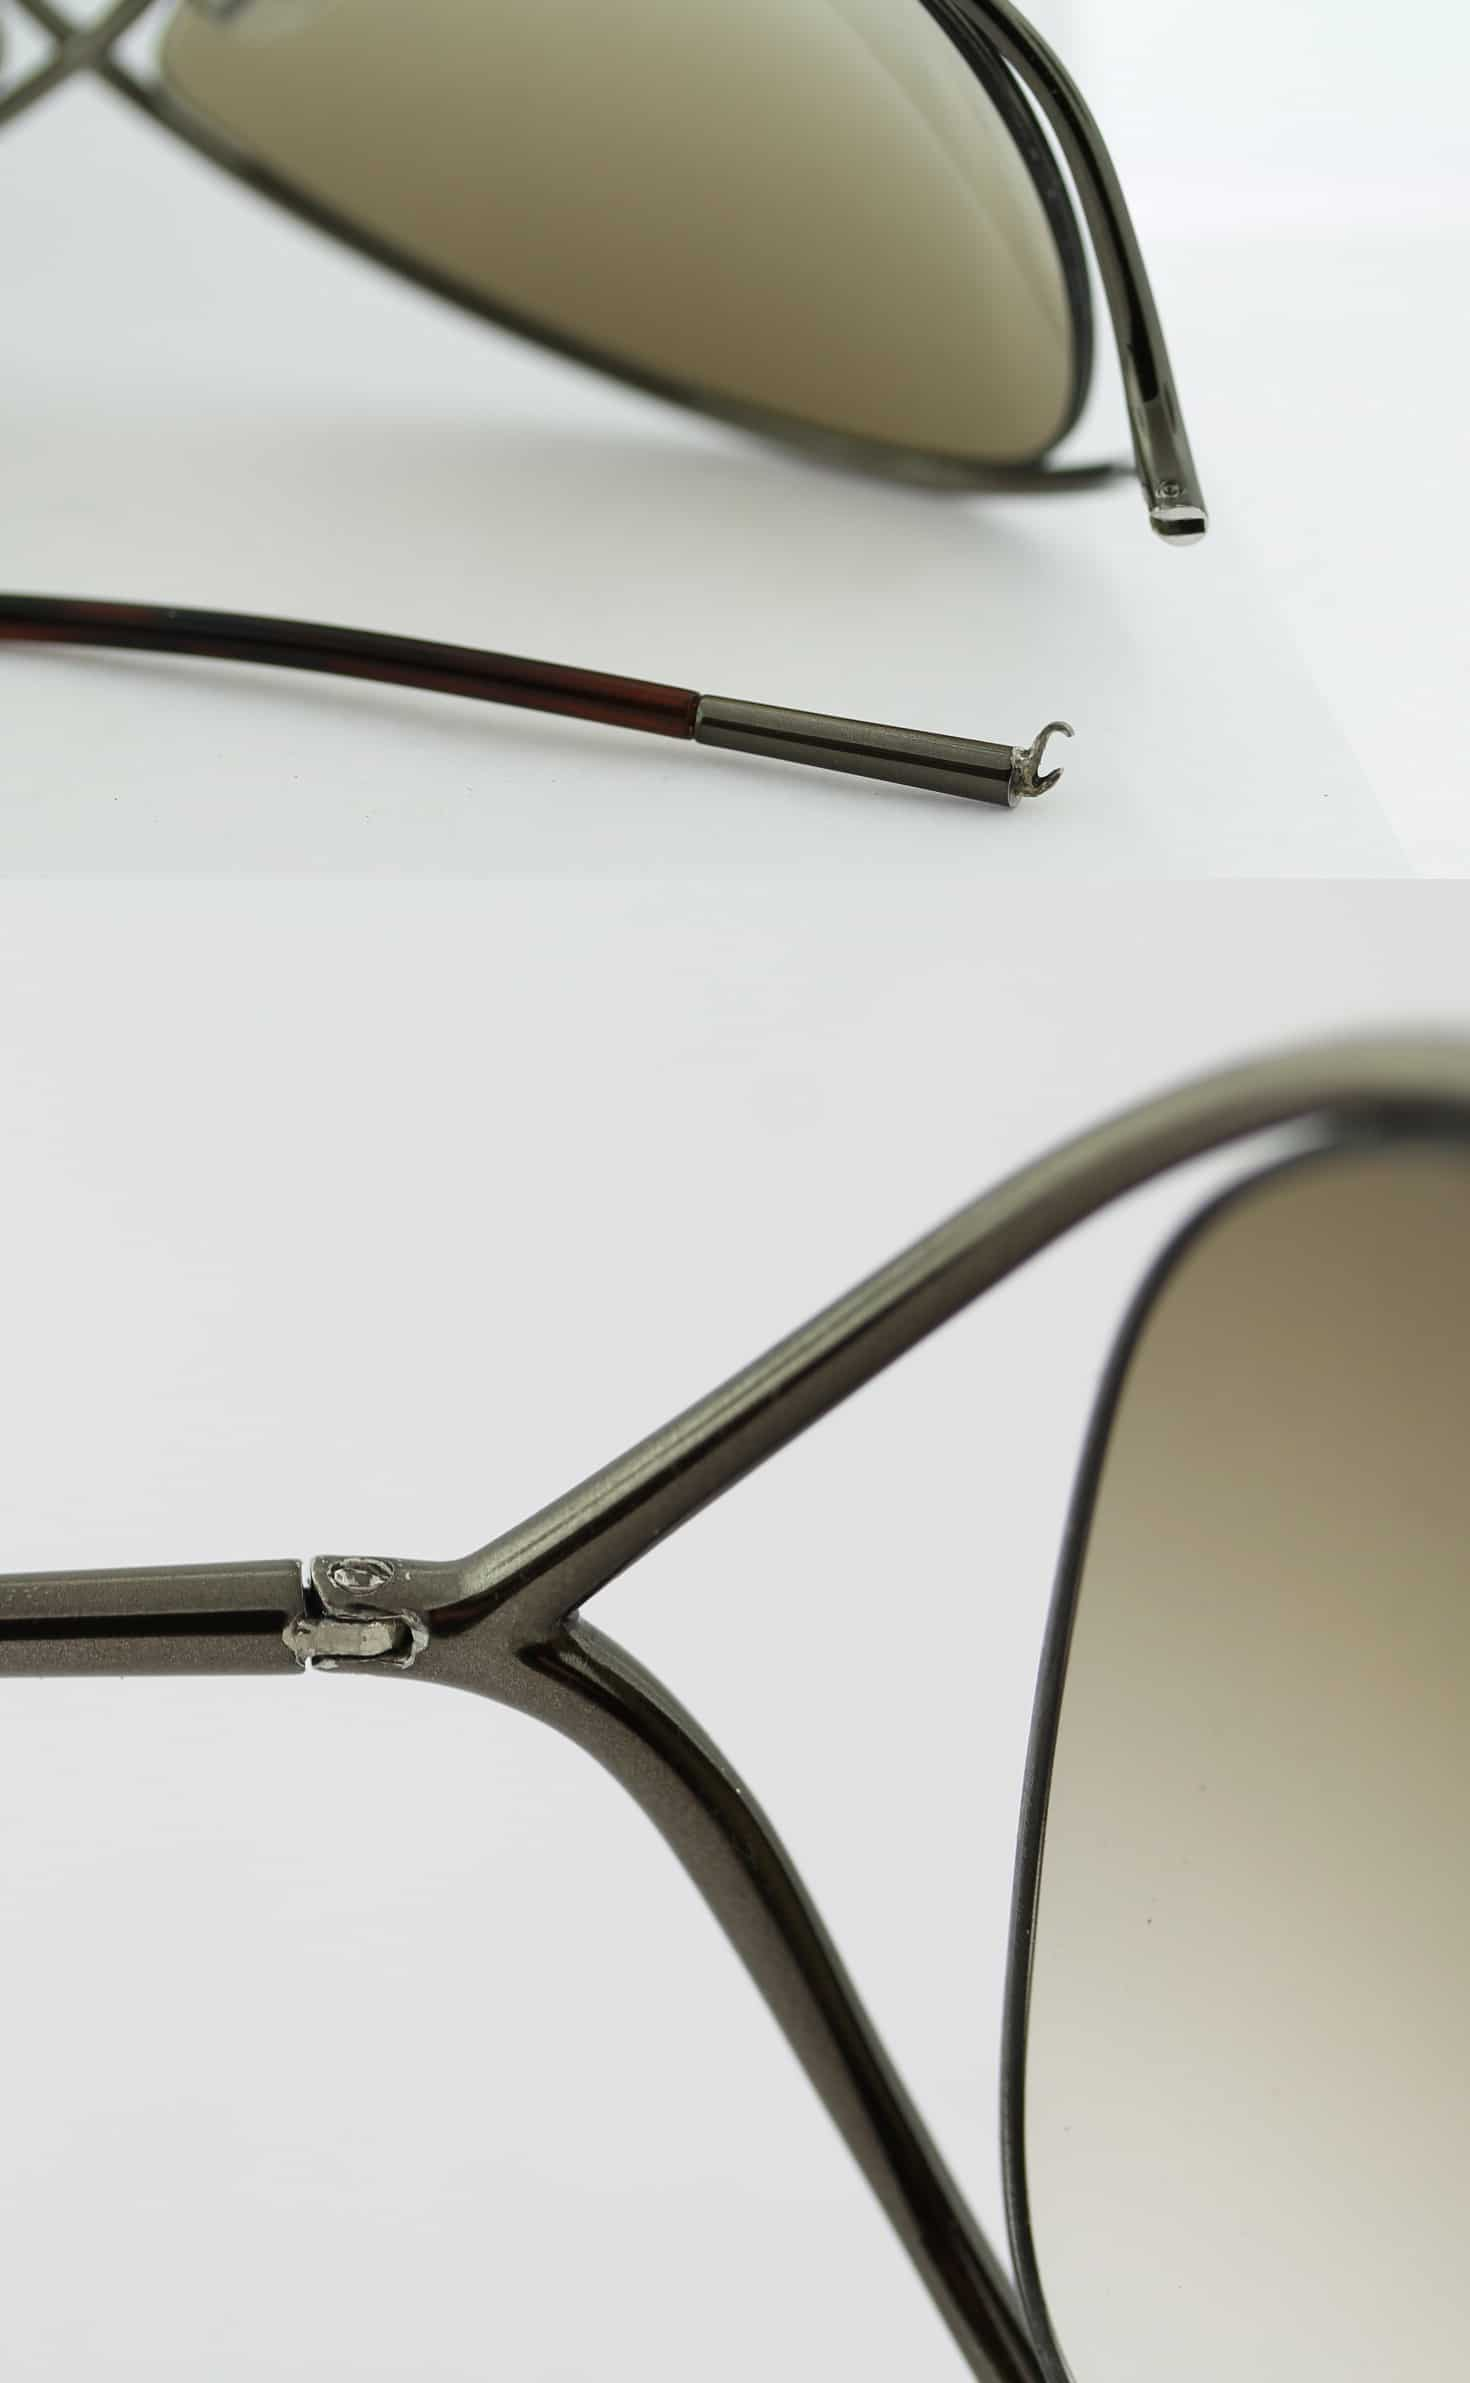 524d3af06a If your eyeglasses break in the middle of the hinge or close to the screw  you need a hinge rebuild.